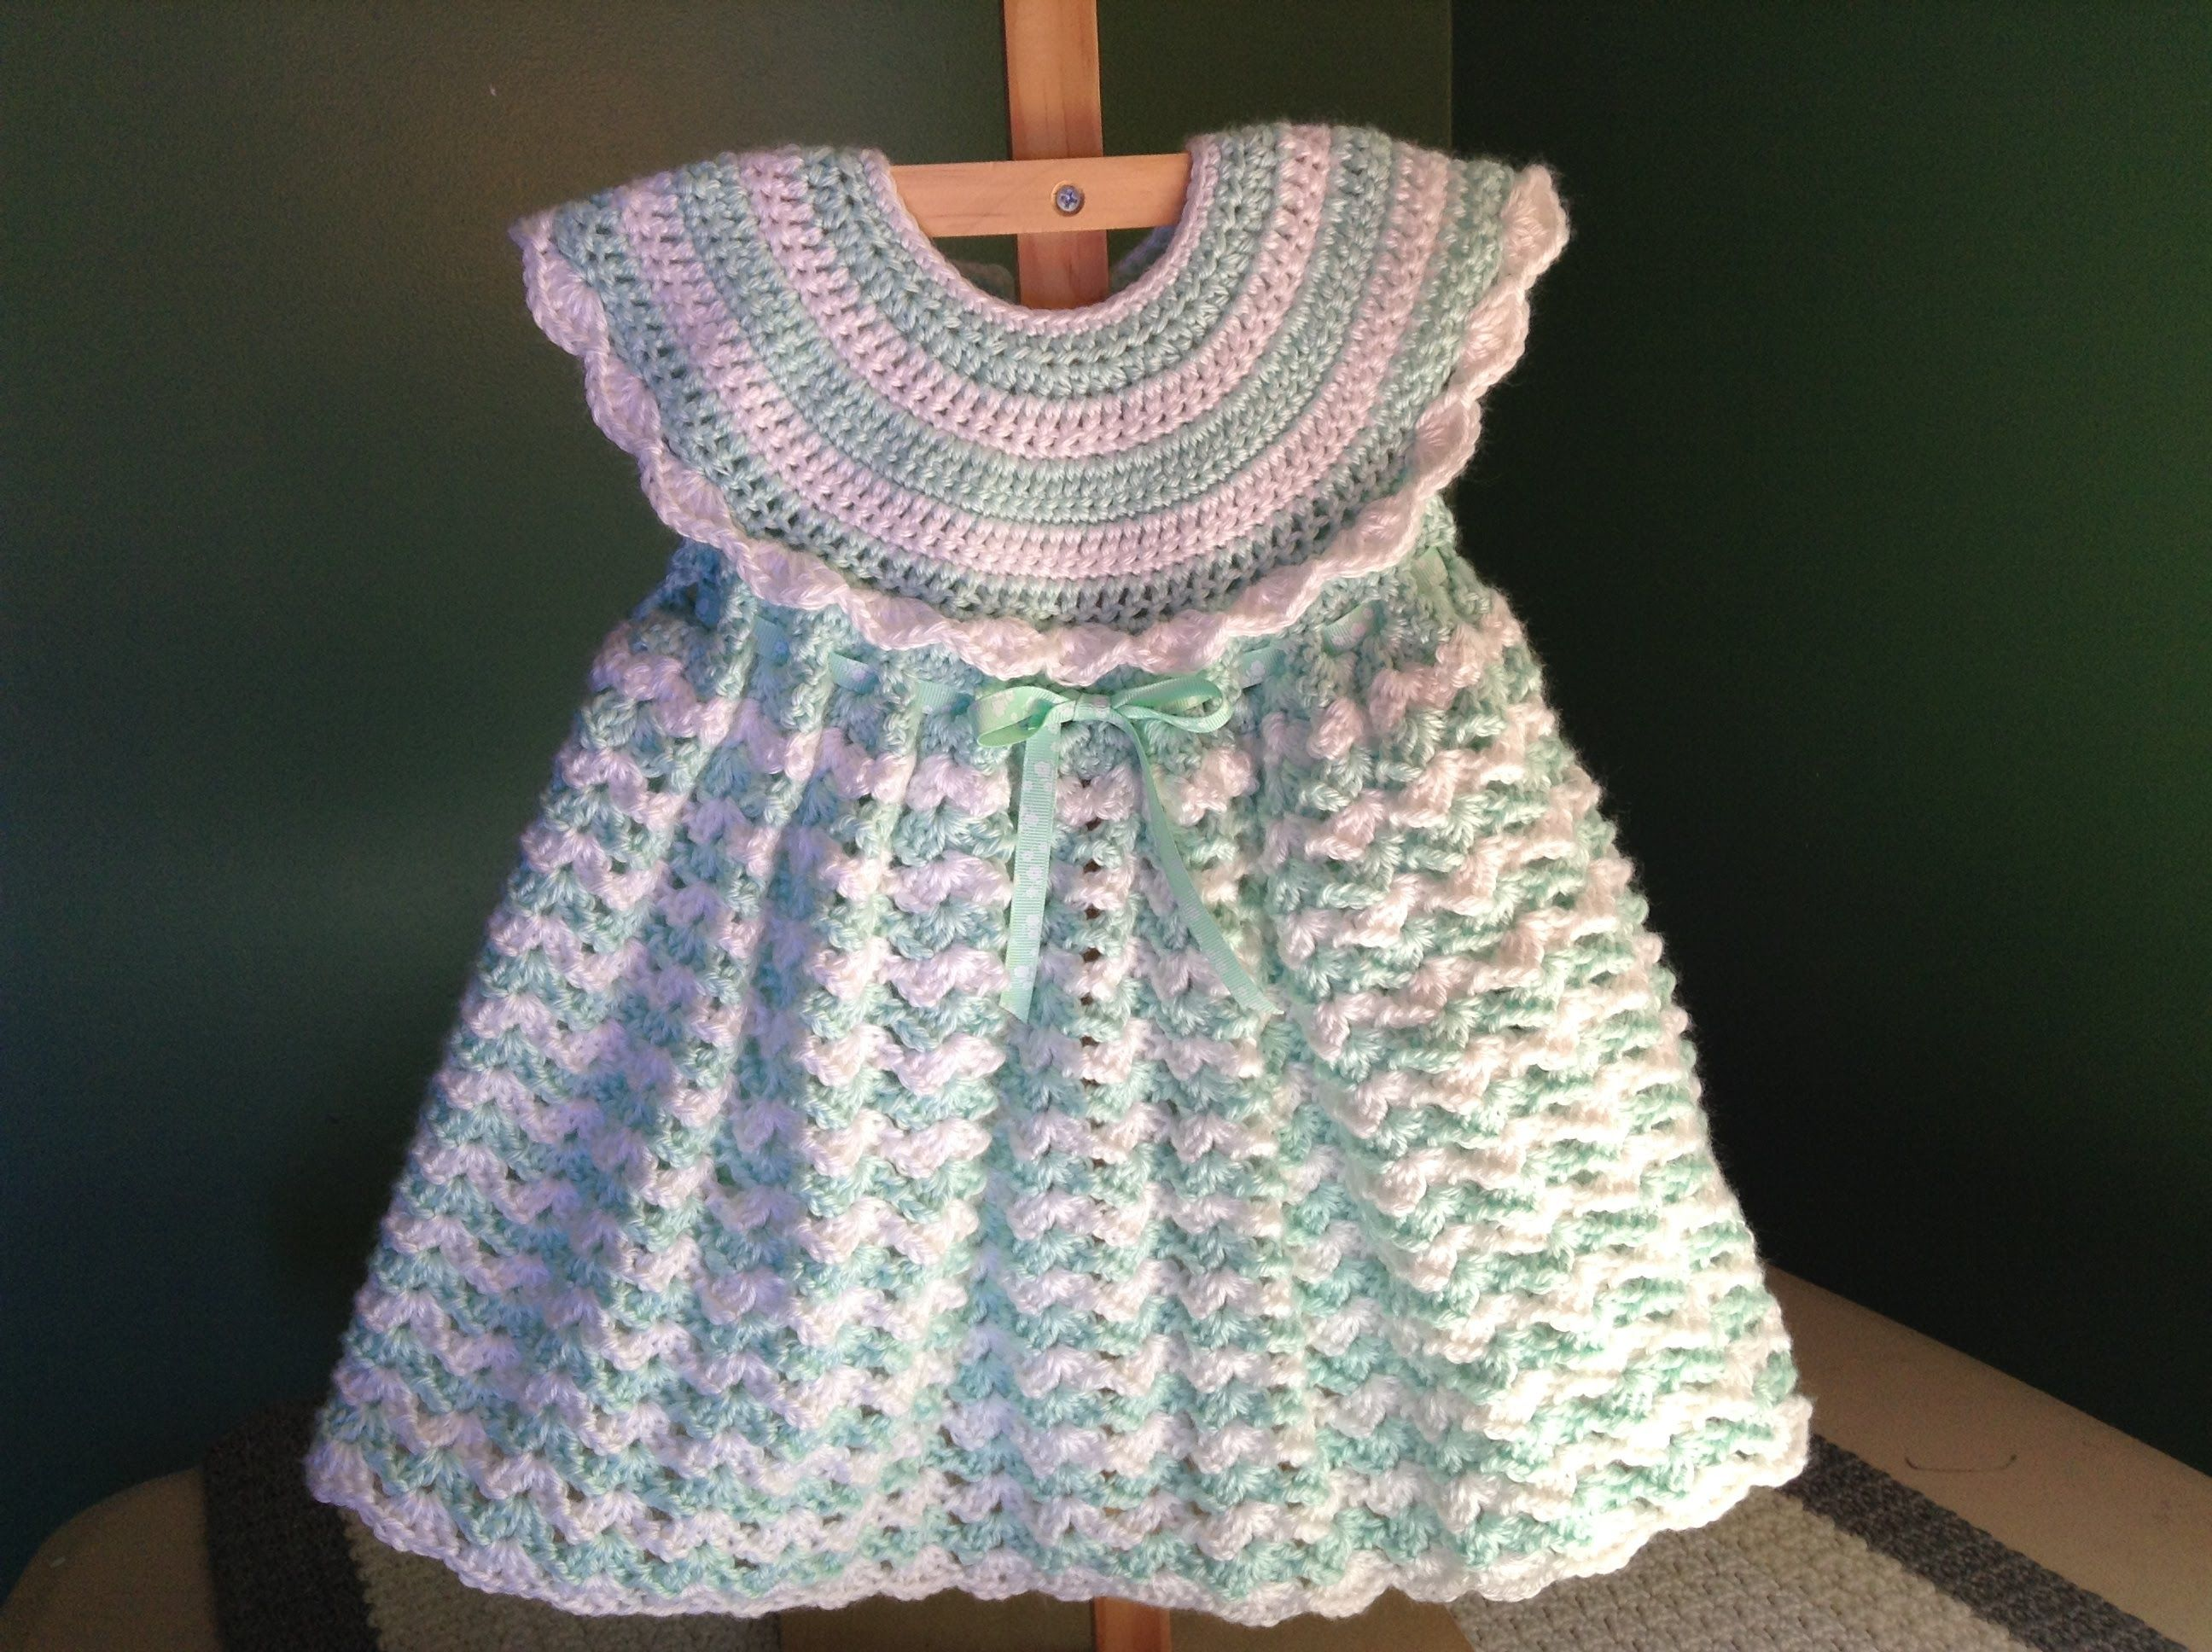 b583ea32c6 Pinner said  In this tutorial I show you how to crochet this beautiful baby  dress. This dress is perfect for beginners to try.